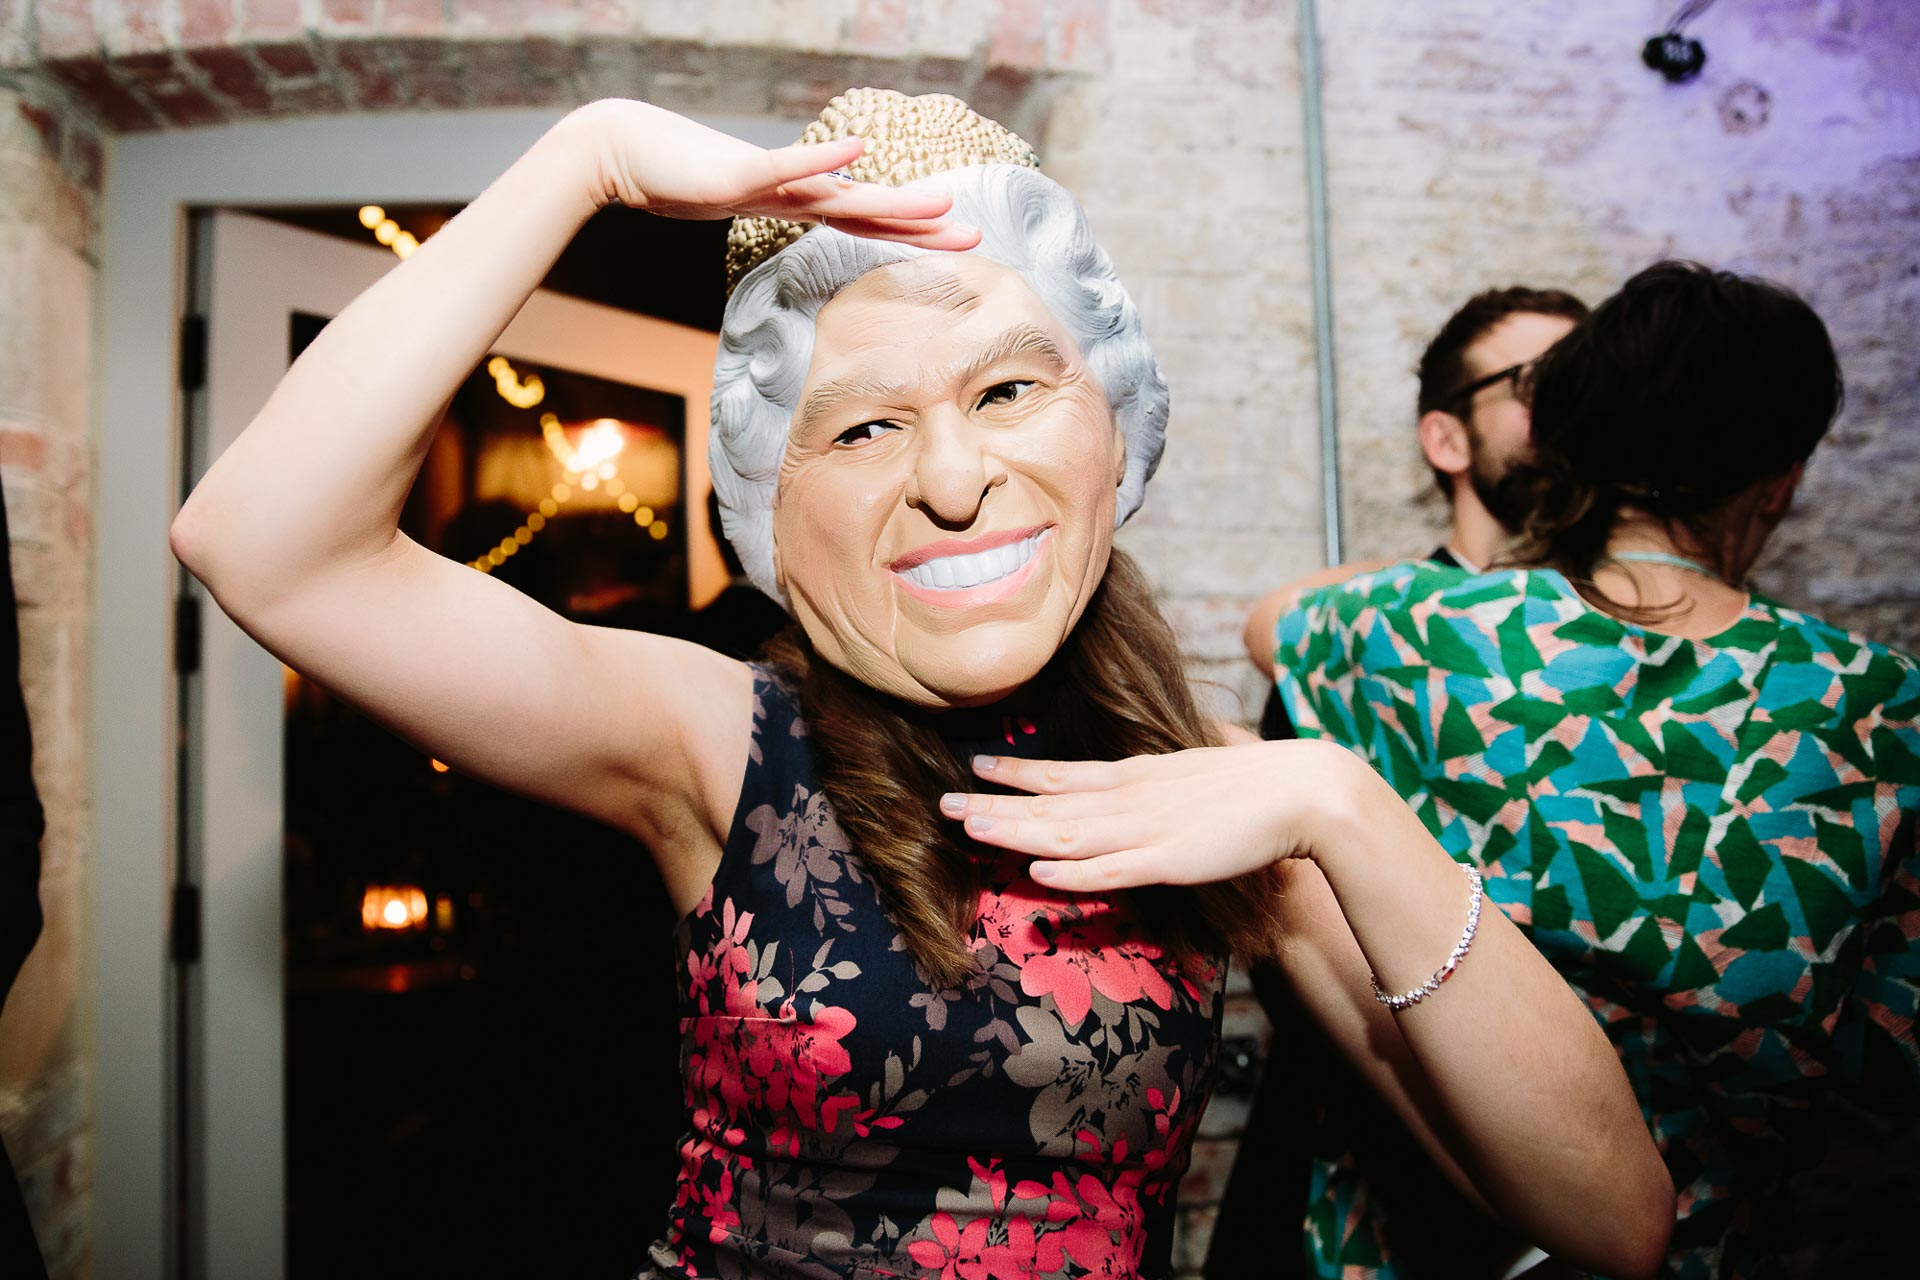 HOW TO HAVE A BUZZING DANCE FLOOR AT YOUR WEDDING